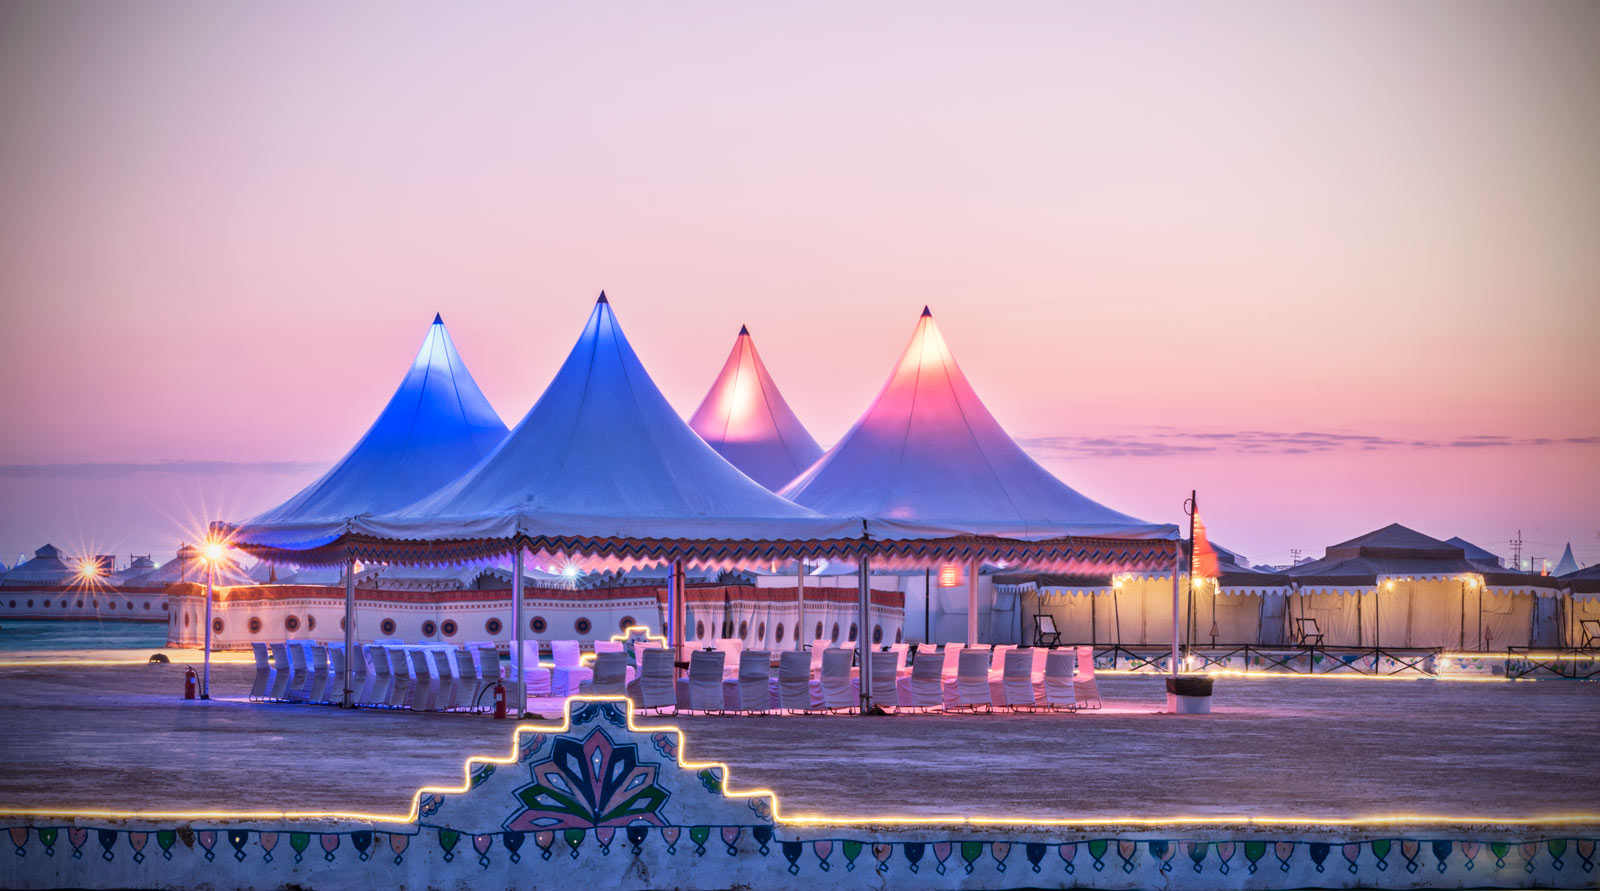 How To Reach Rann Utsav From Mumbai?